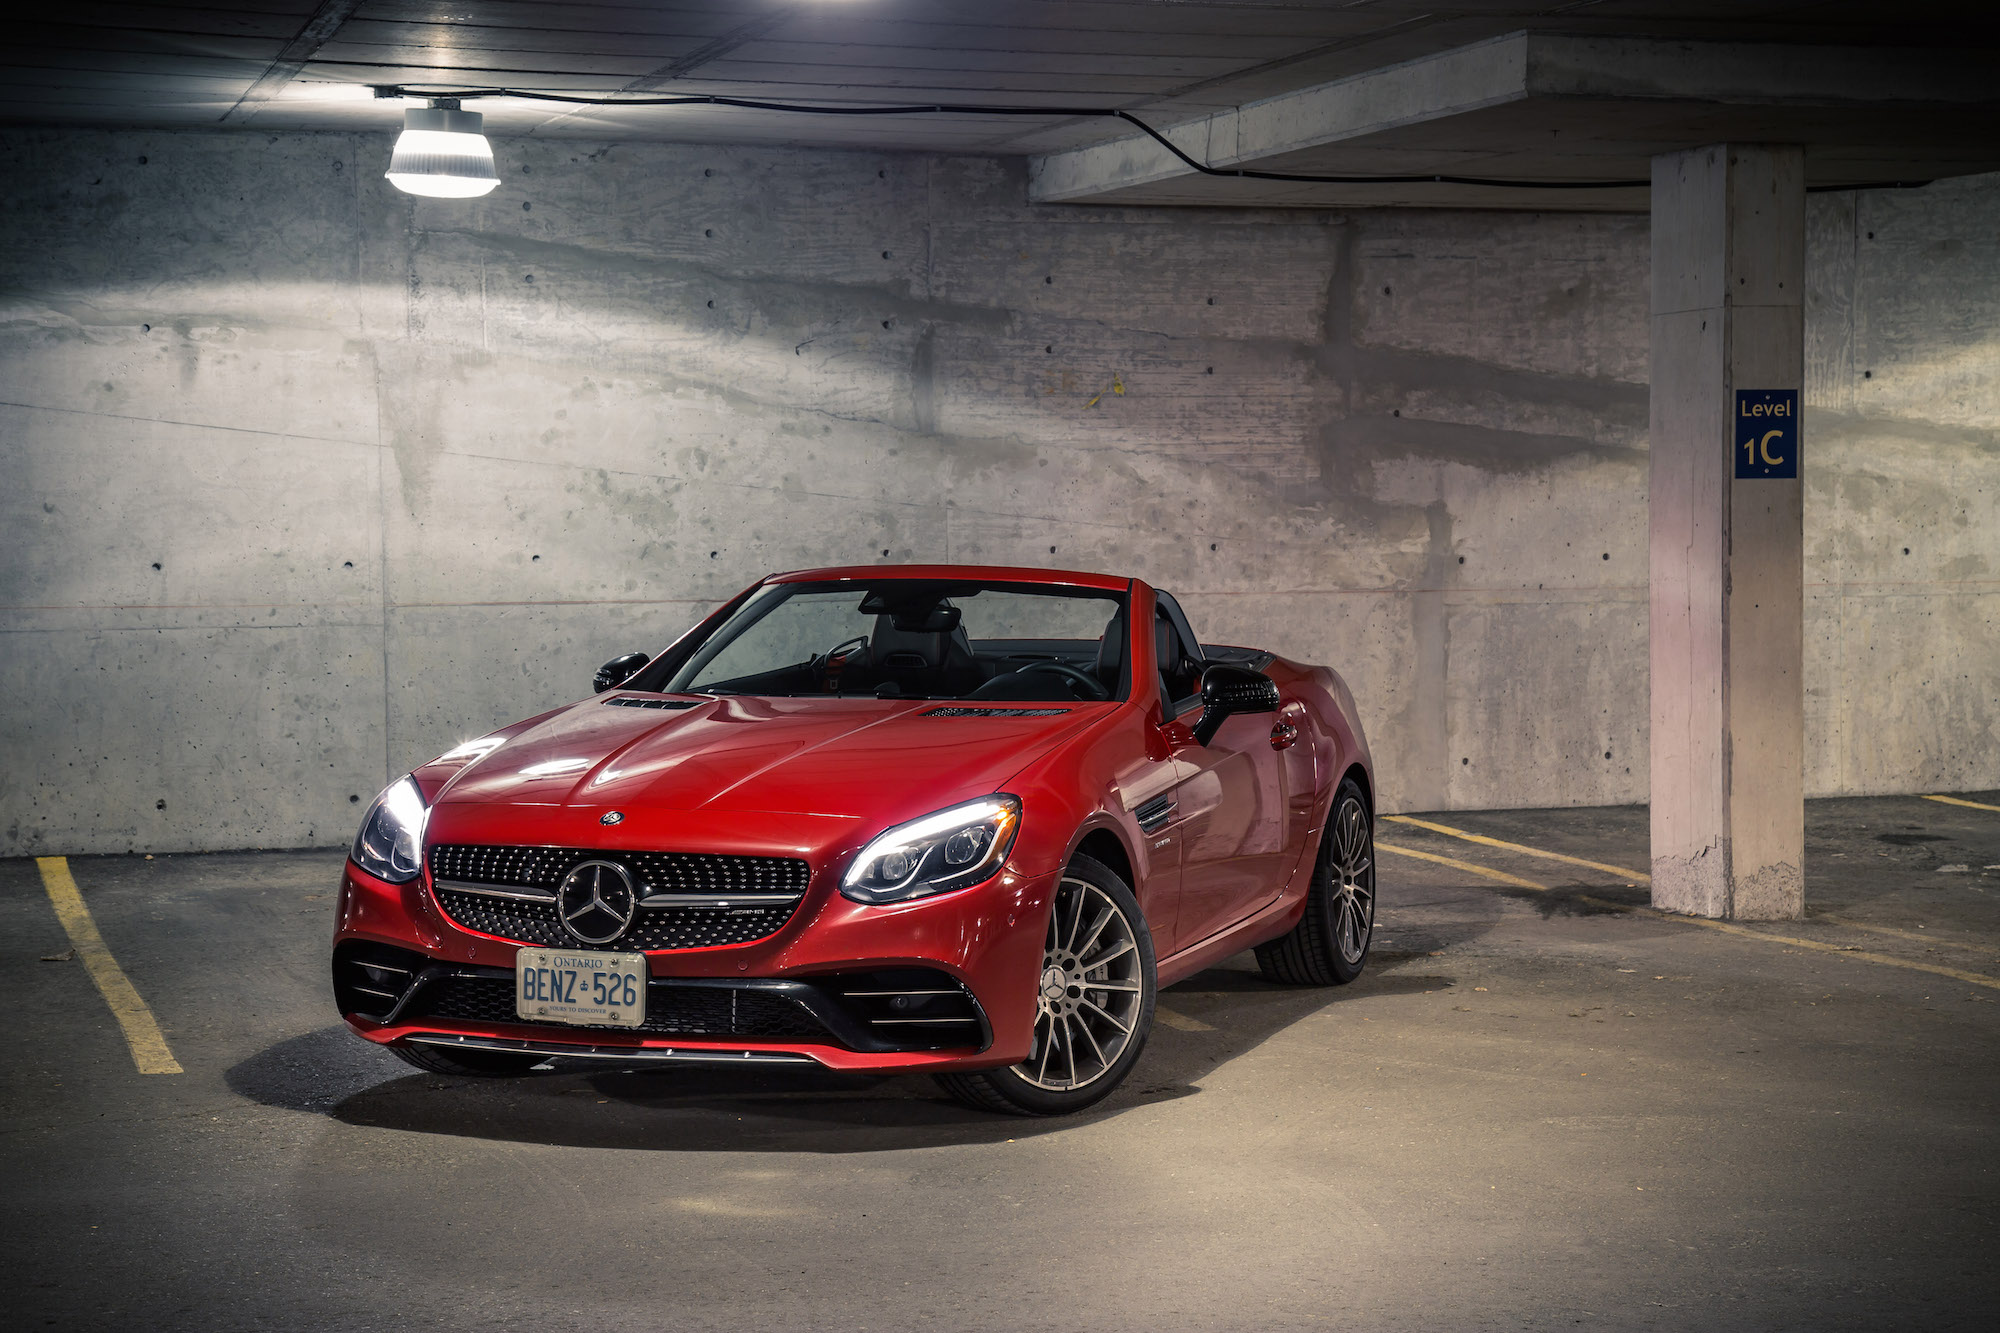 http://www.canadianautoreview.ca/images/car_photos/2017-mercedes-amg-slc-43/normal/mercedes-amg-slc-43-fs2.jpg